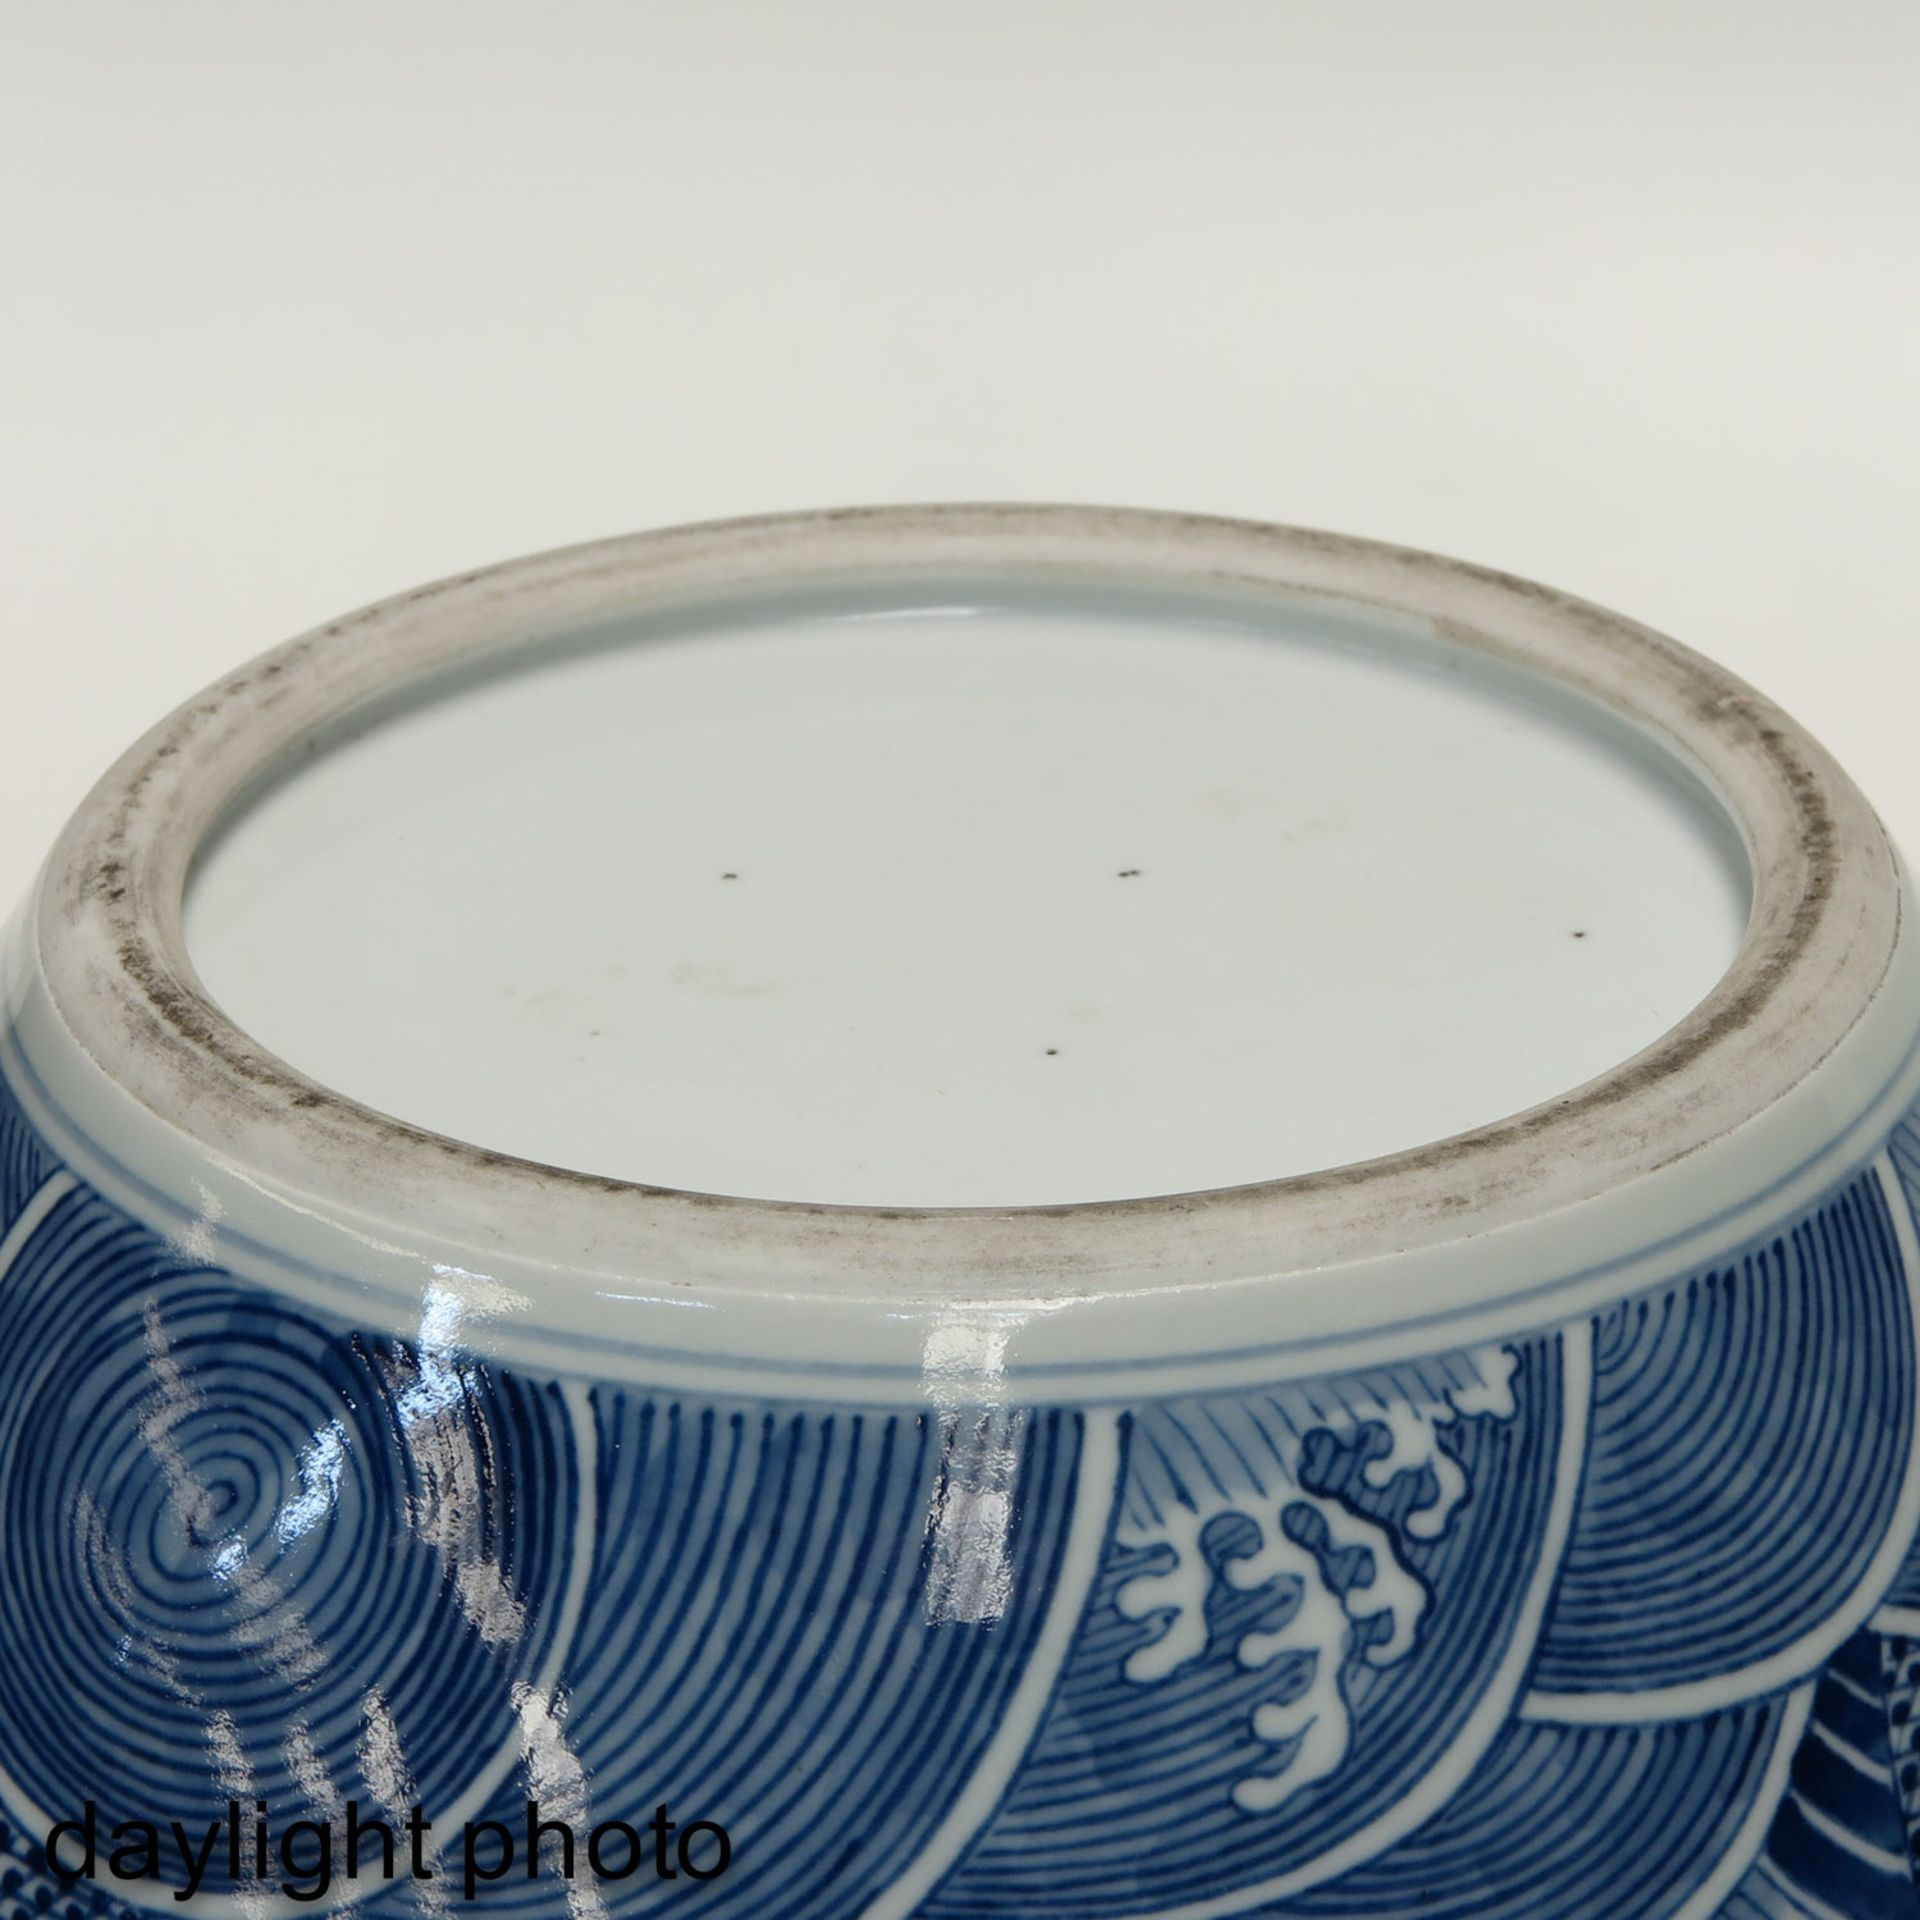 Los 7024 - A Blue and White Tianqiu Ping Vase